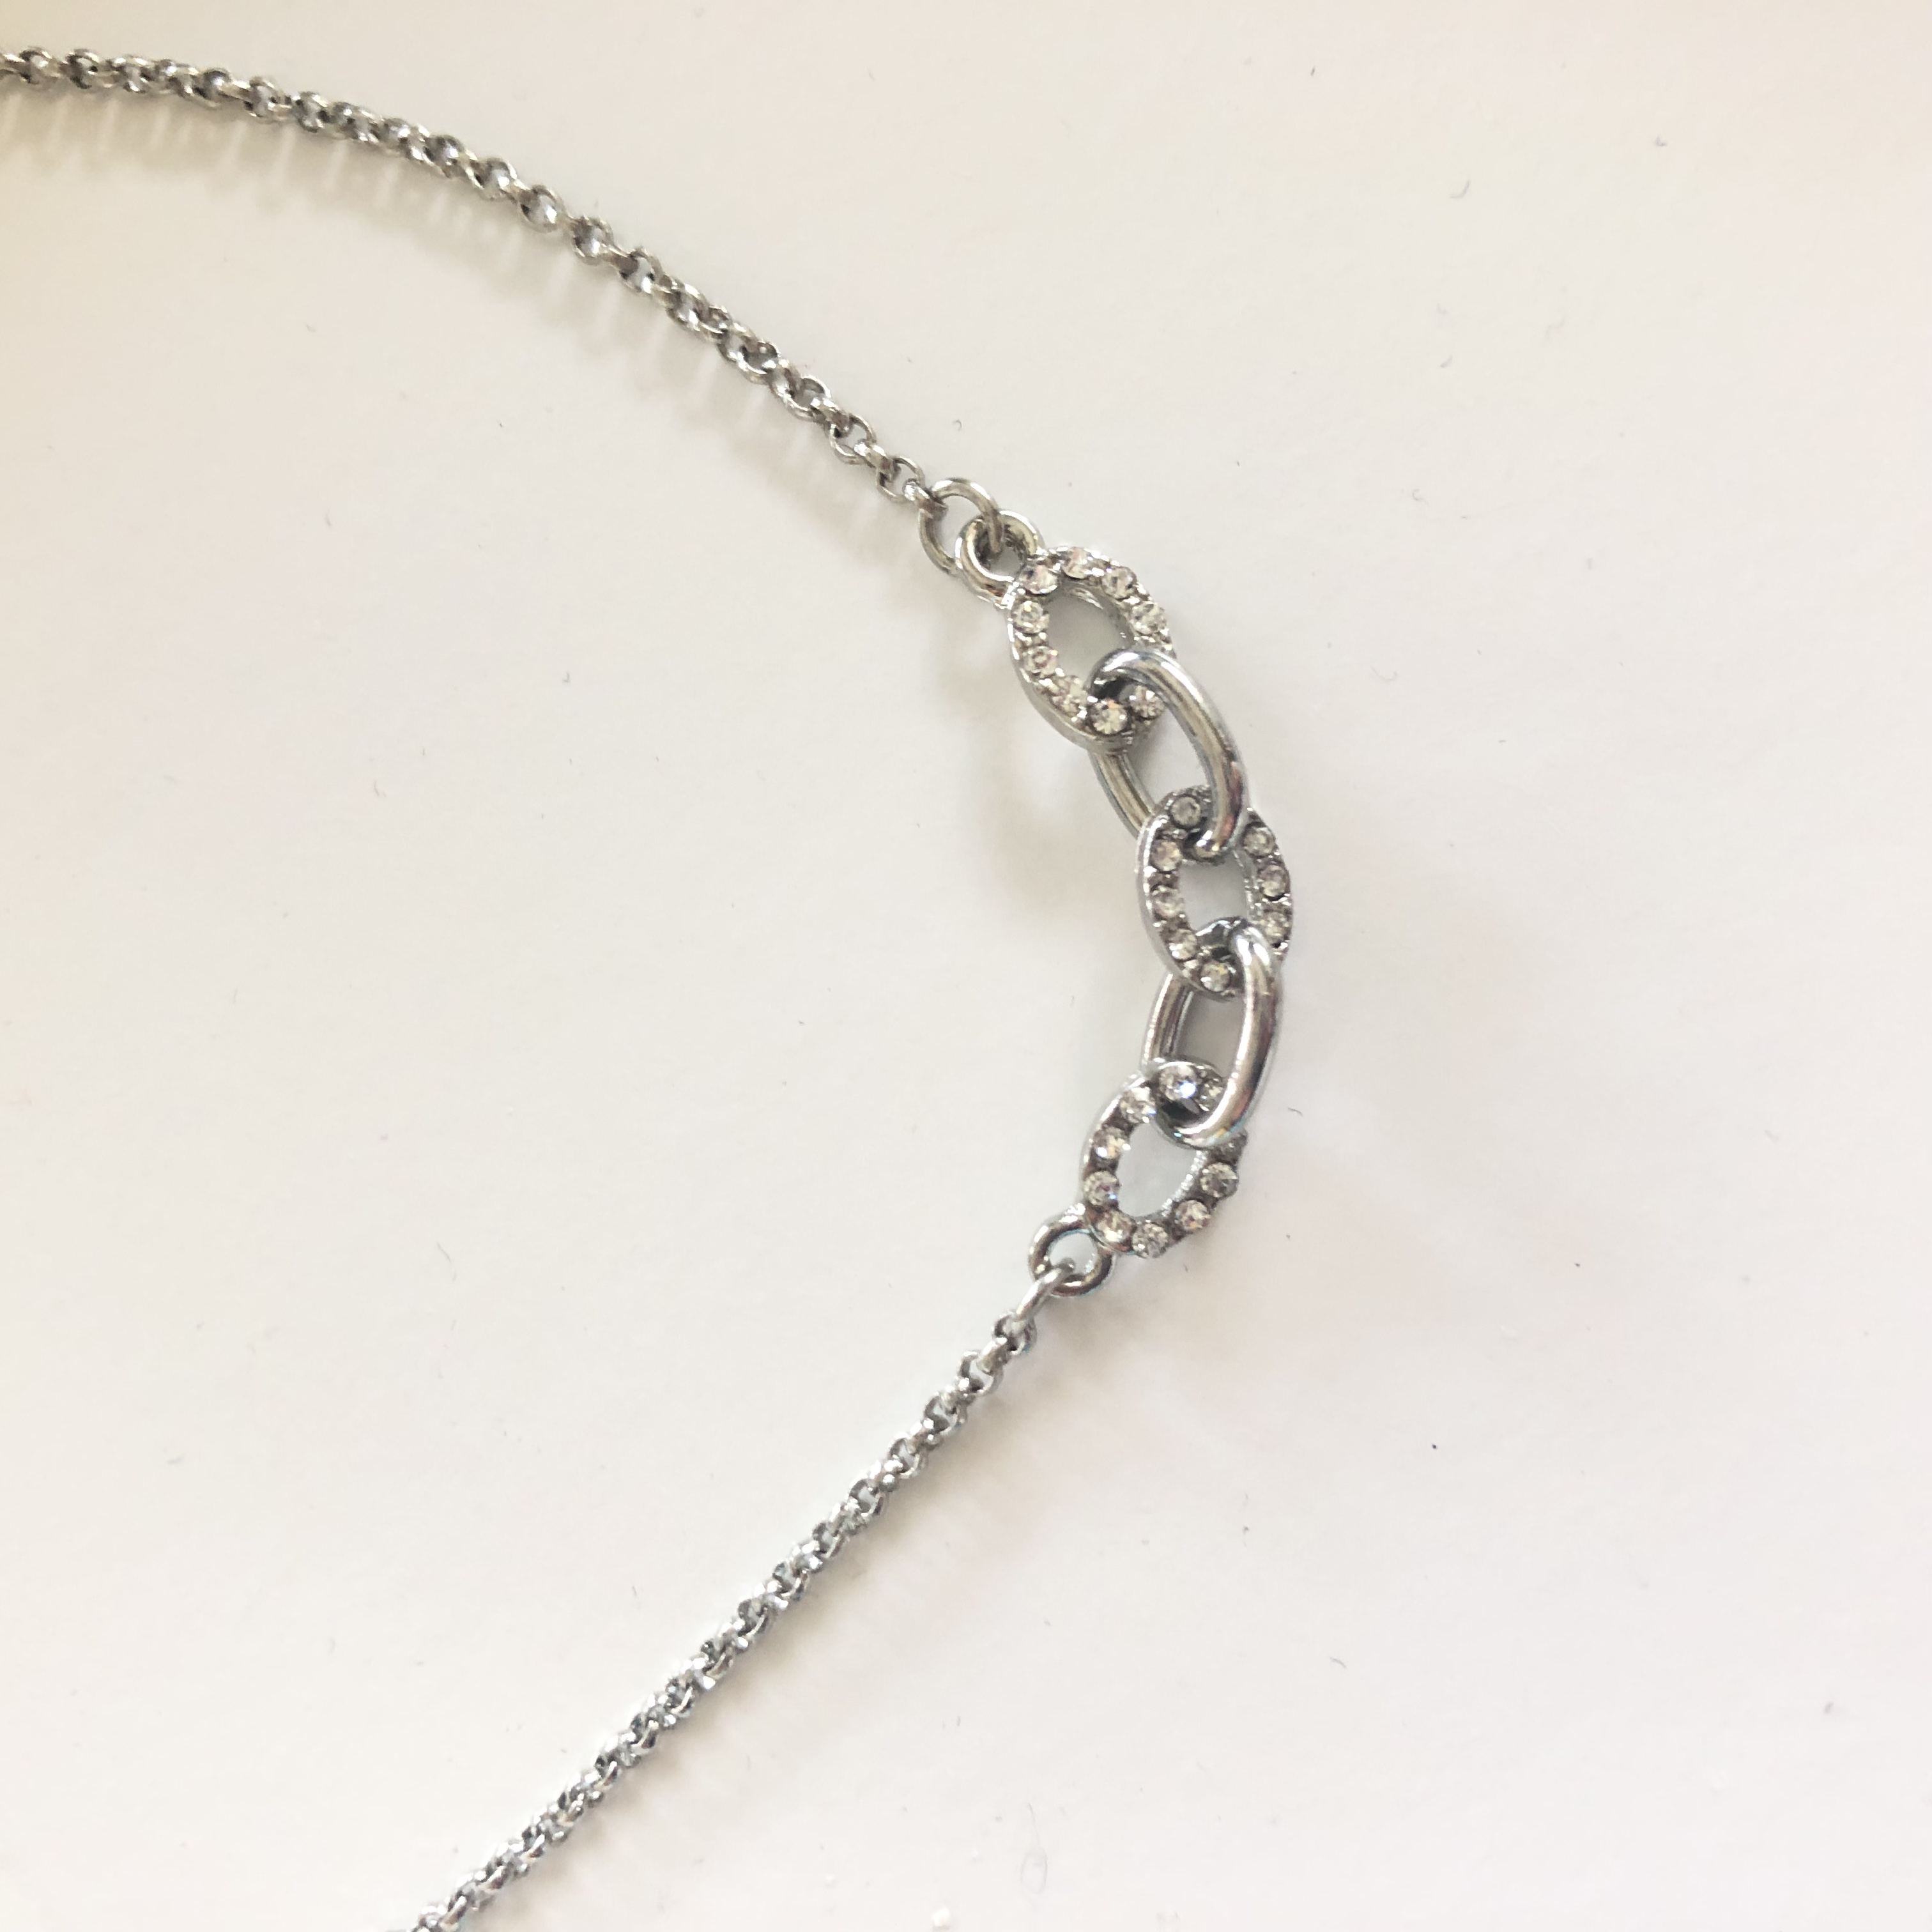 Baublebar Pave Link Necklace in Silver